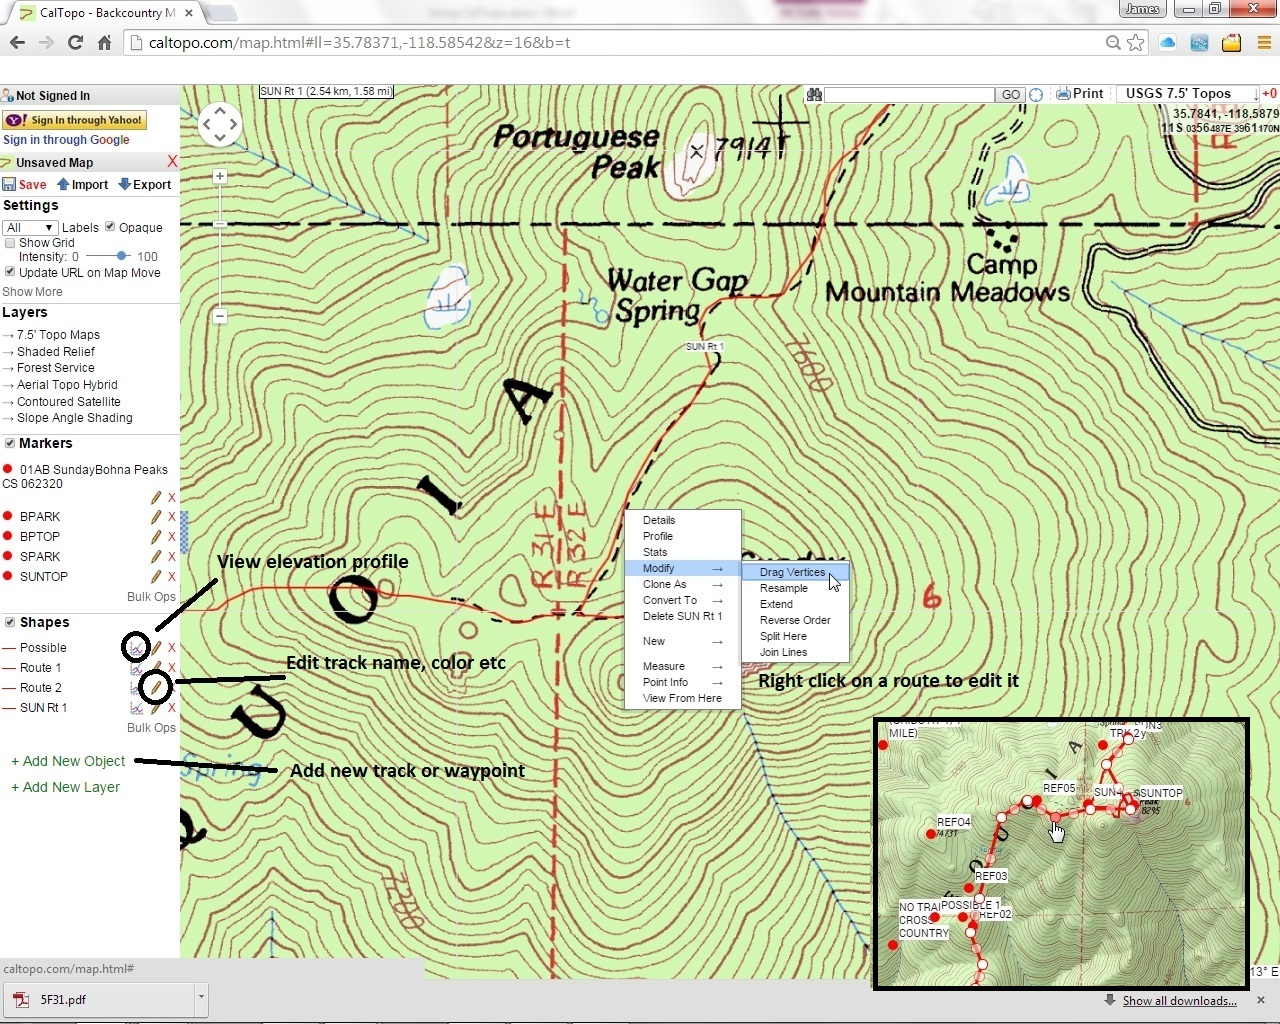 USING CALTOPO WITH HPS MAPS